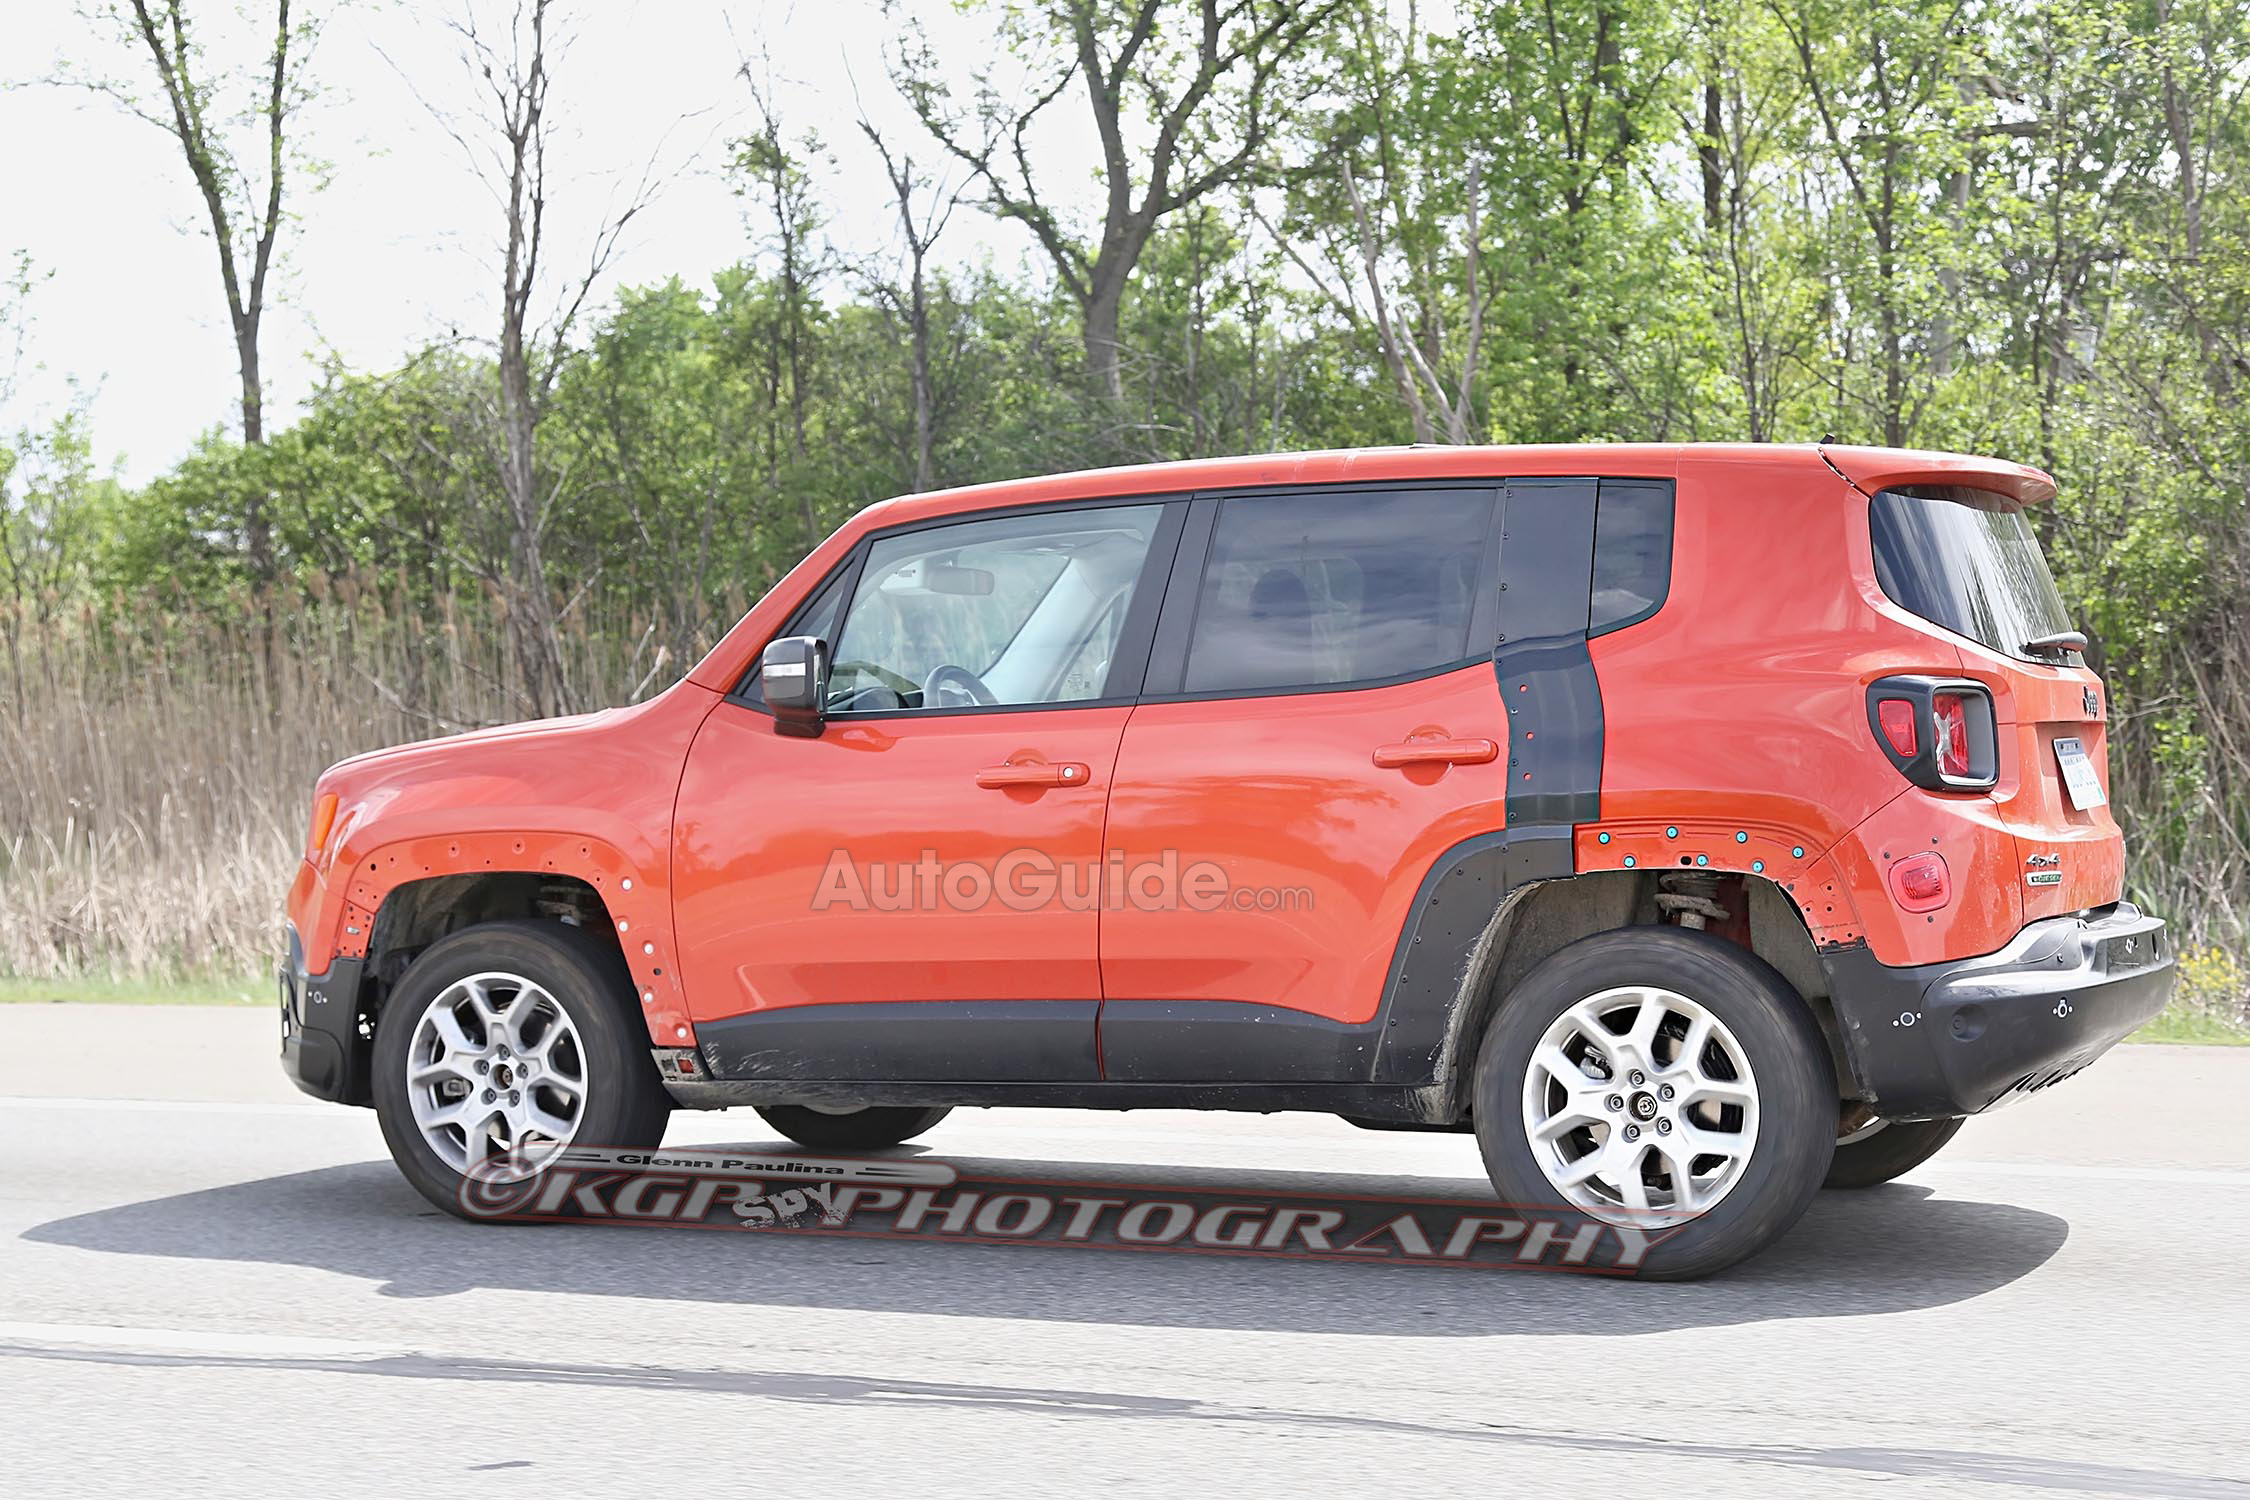 2017 jeep patriot mule spied testing with renegade body. Black Bedroom Furniture Sets. Home Design Ideas